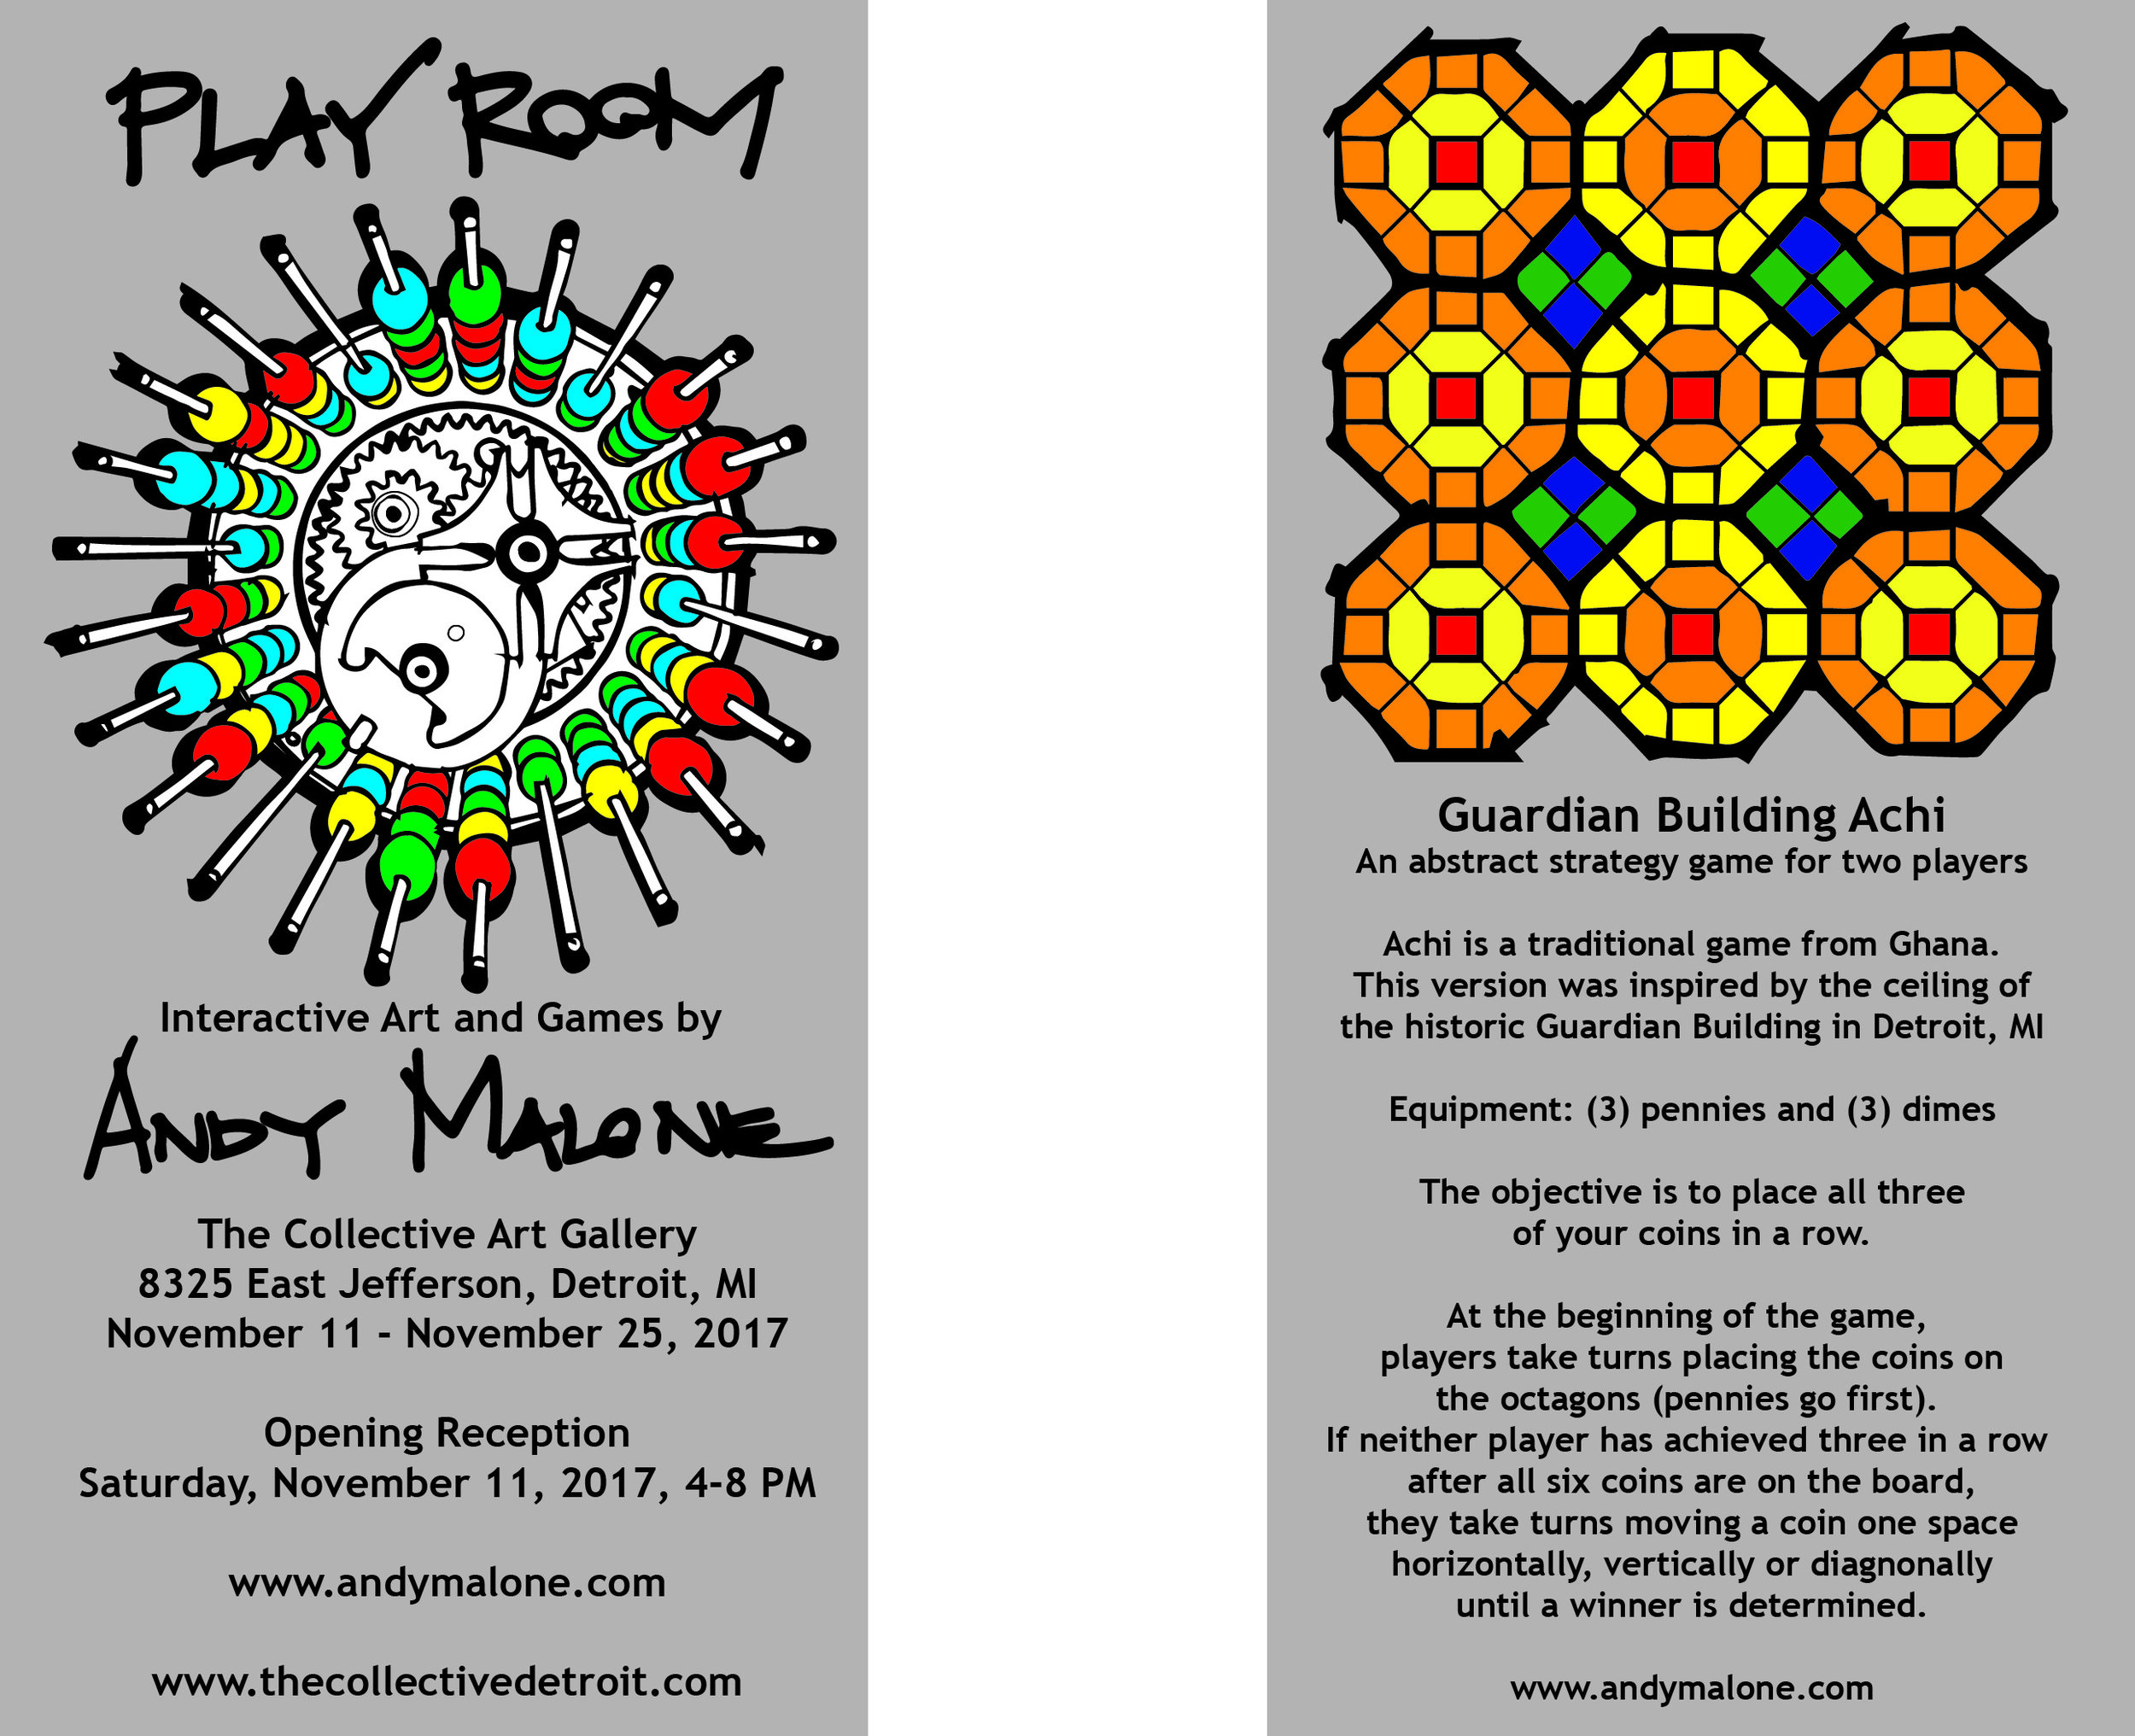 play room FLYER05.jpg